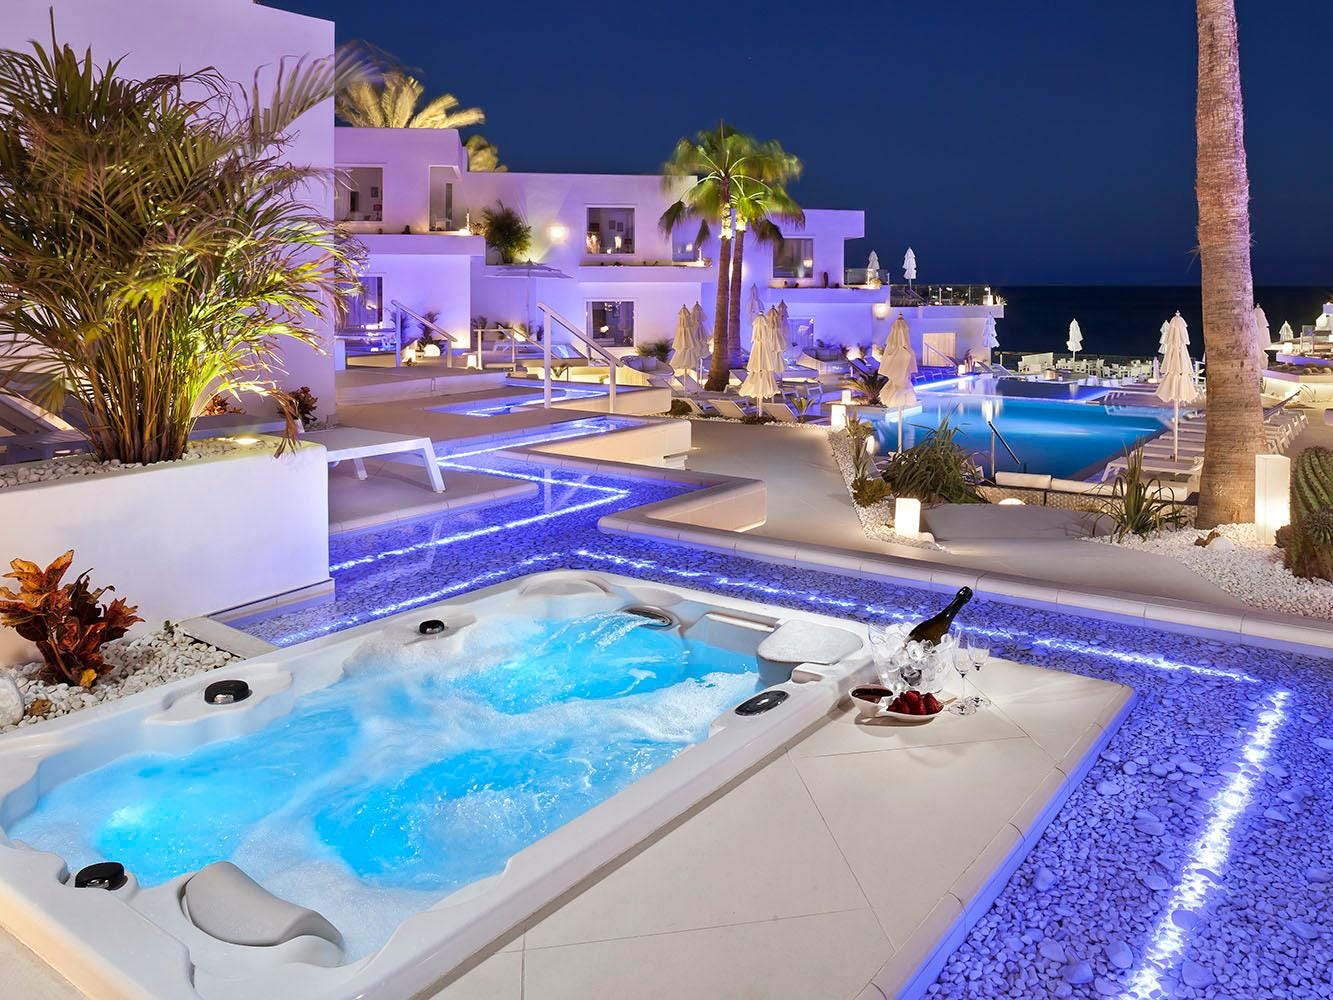 At No. 1 on the list of the most romantic hotels in the world is Lani's Suites Deluxe in Puerto del Carmen, Spain.